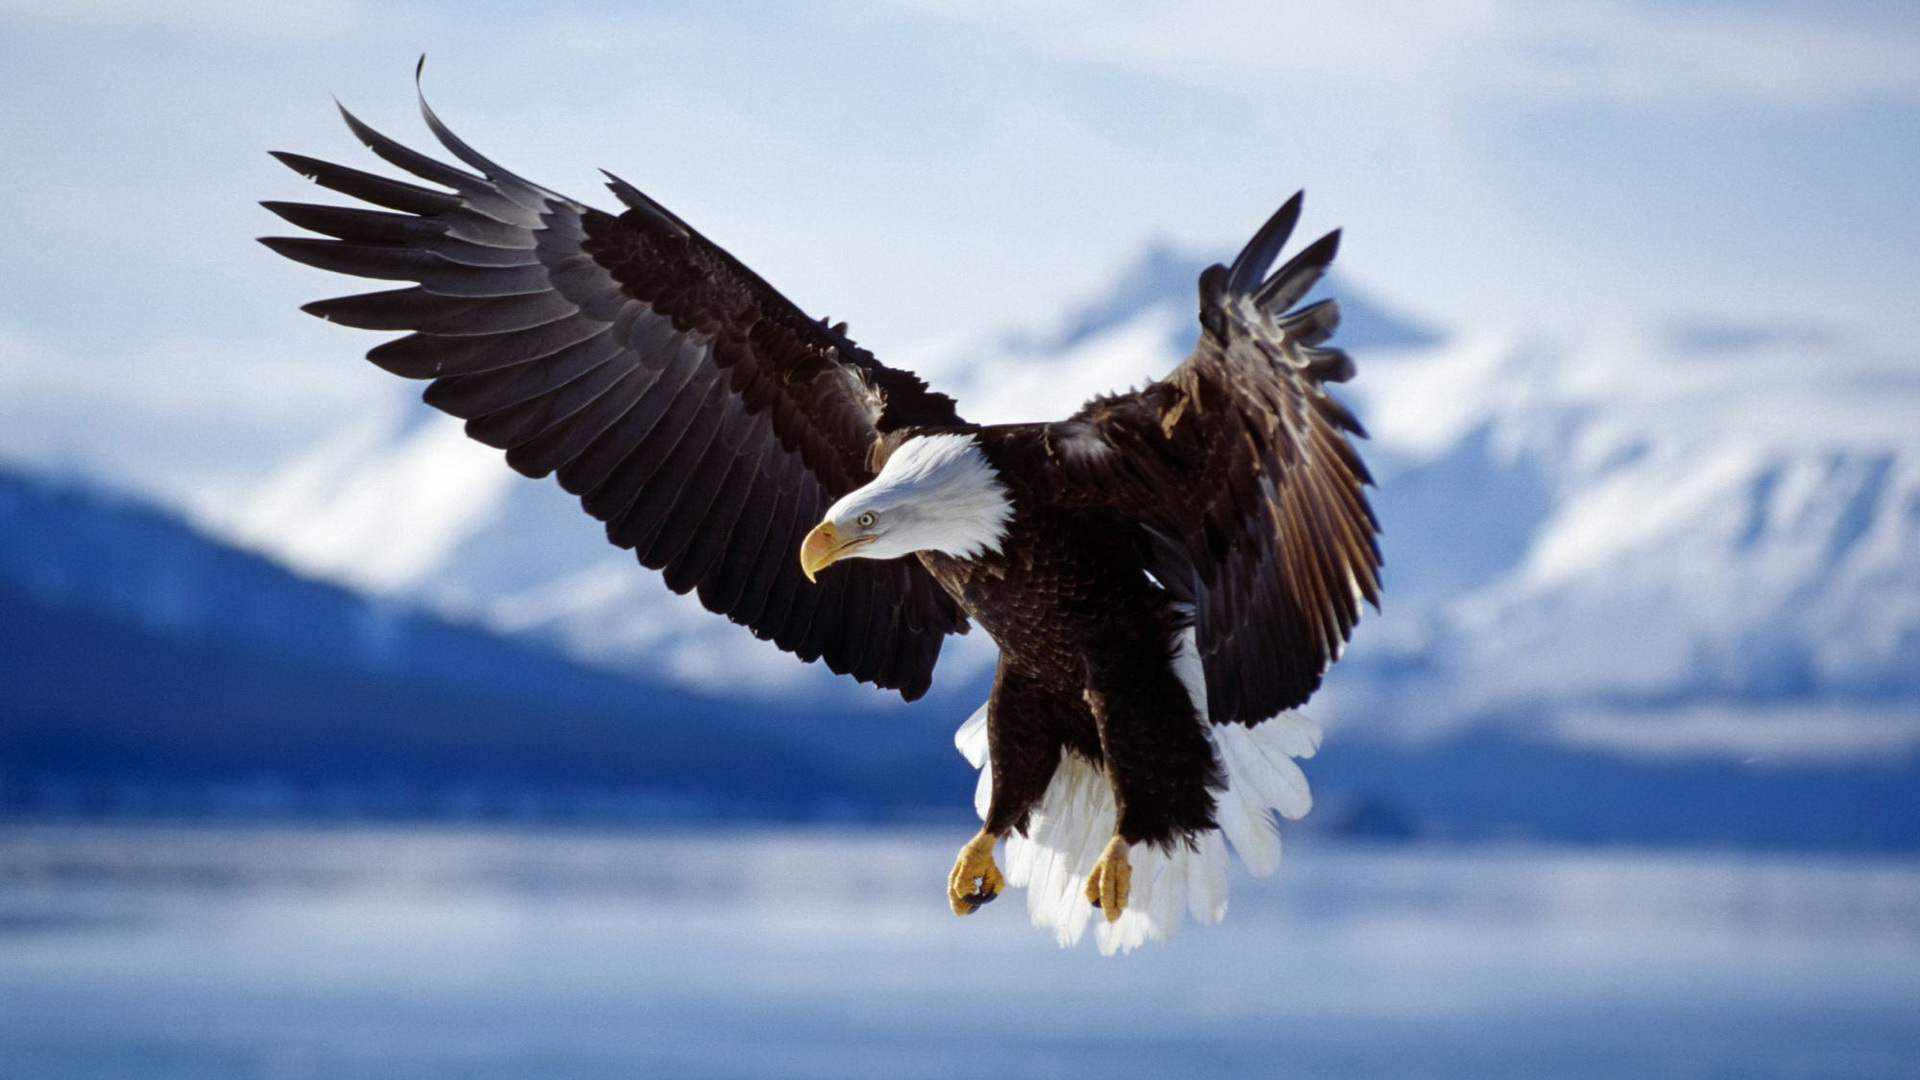 click to free download the wallpaper--Free Download Cute Animals Picture - A Flying Eagle, Wings Fully Stretched, Sharp Eyes Looking Attentively 1920X1080 free wallpaper download